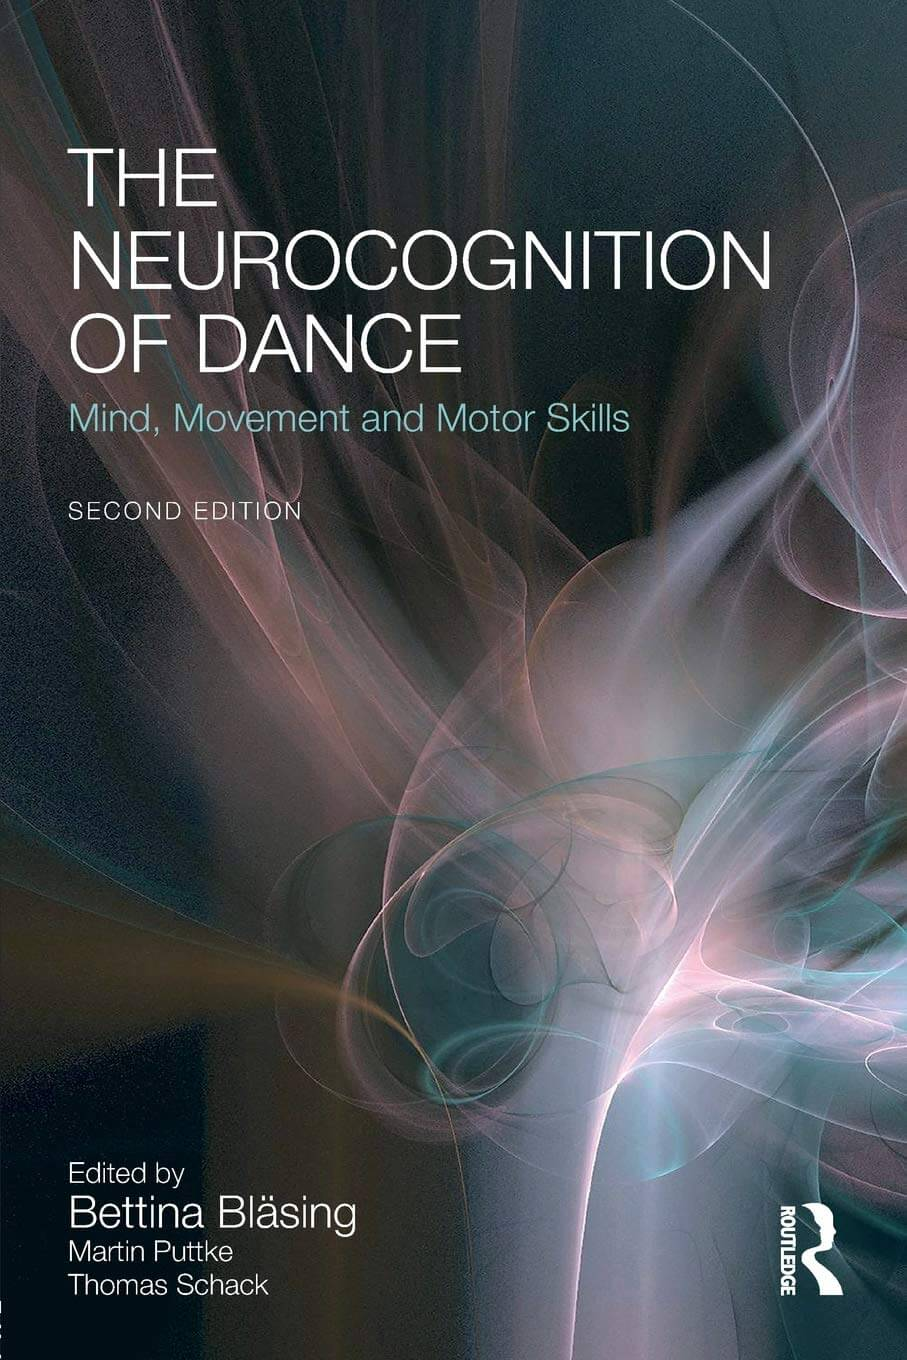 Cover THE NEUROCOGNITION OF DANCE – MIND, MOVEMENT AND MOTOR SKILLS by Bettina Bläsing, Martin Puttke, Thomas Schack